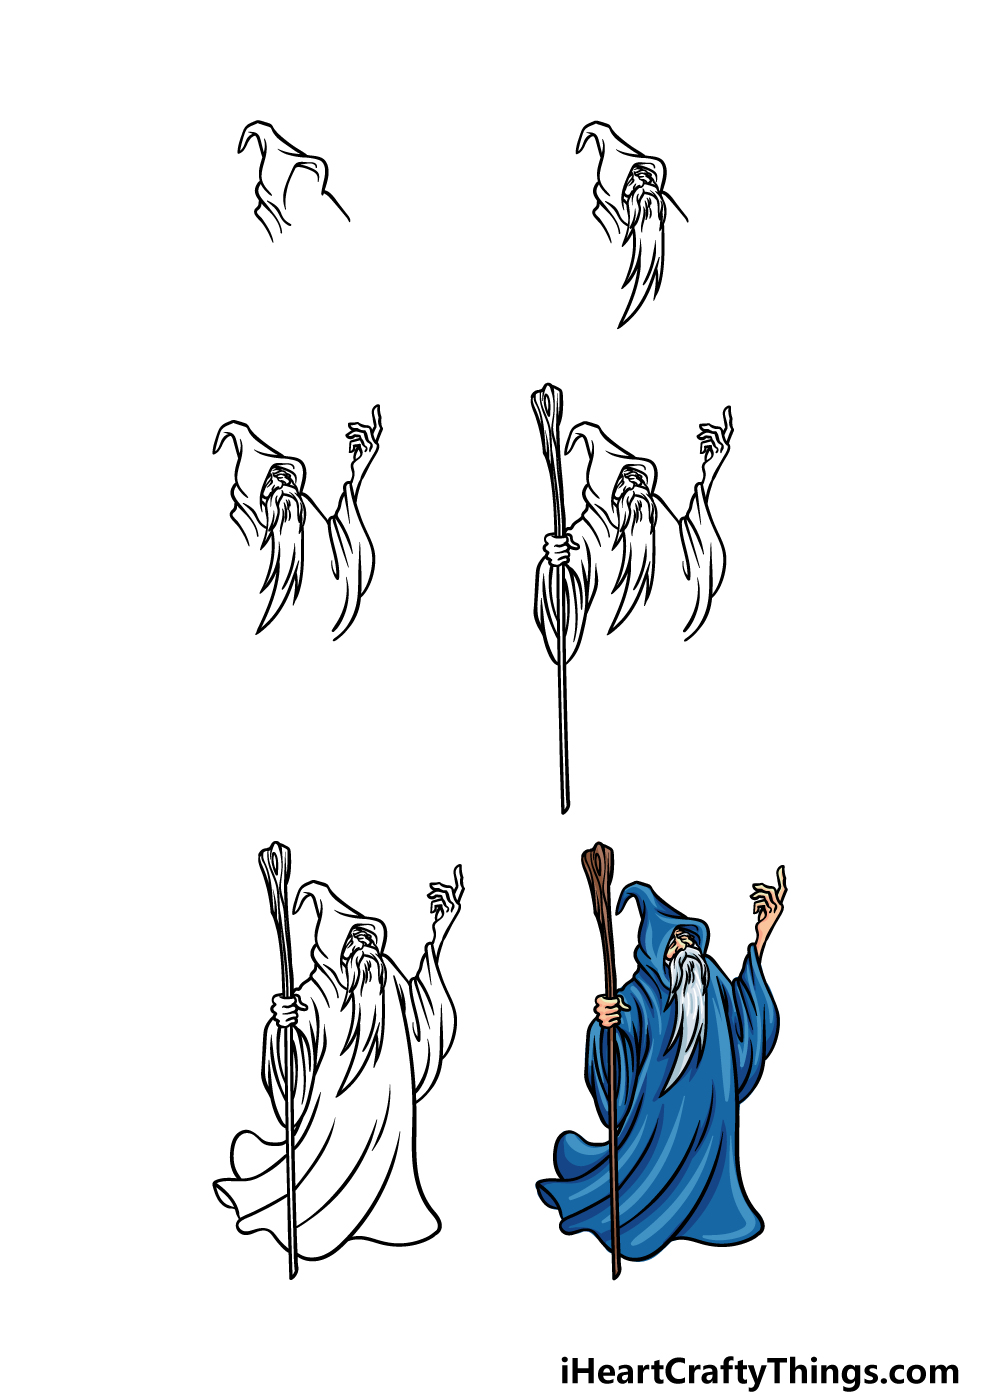 how to draw a wizard in 6 steps